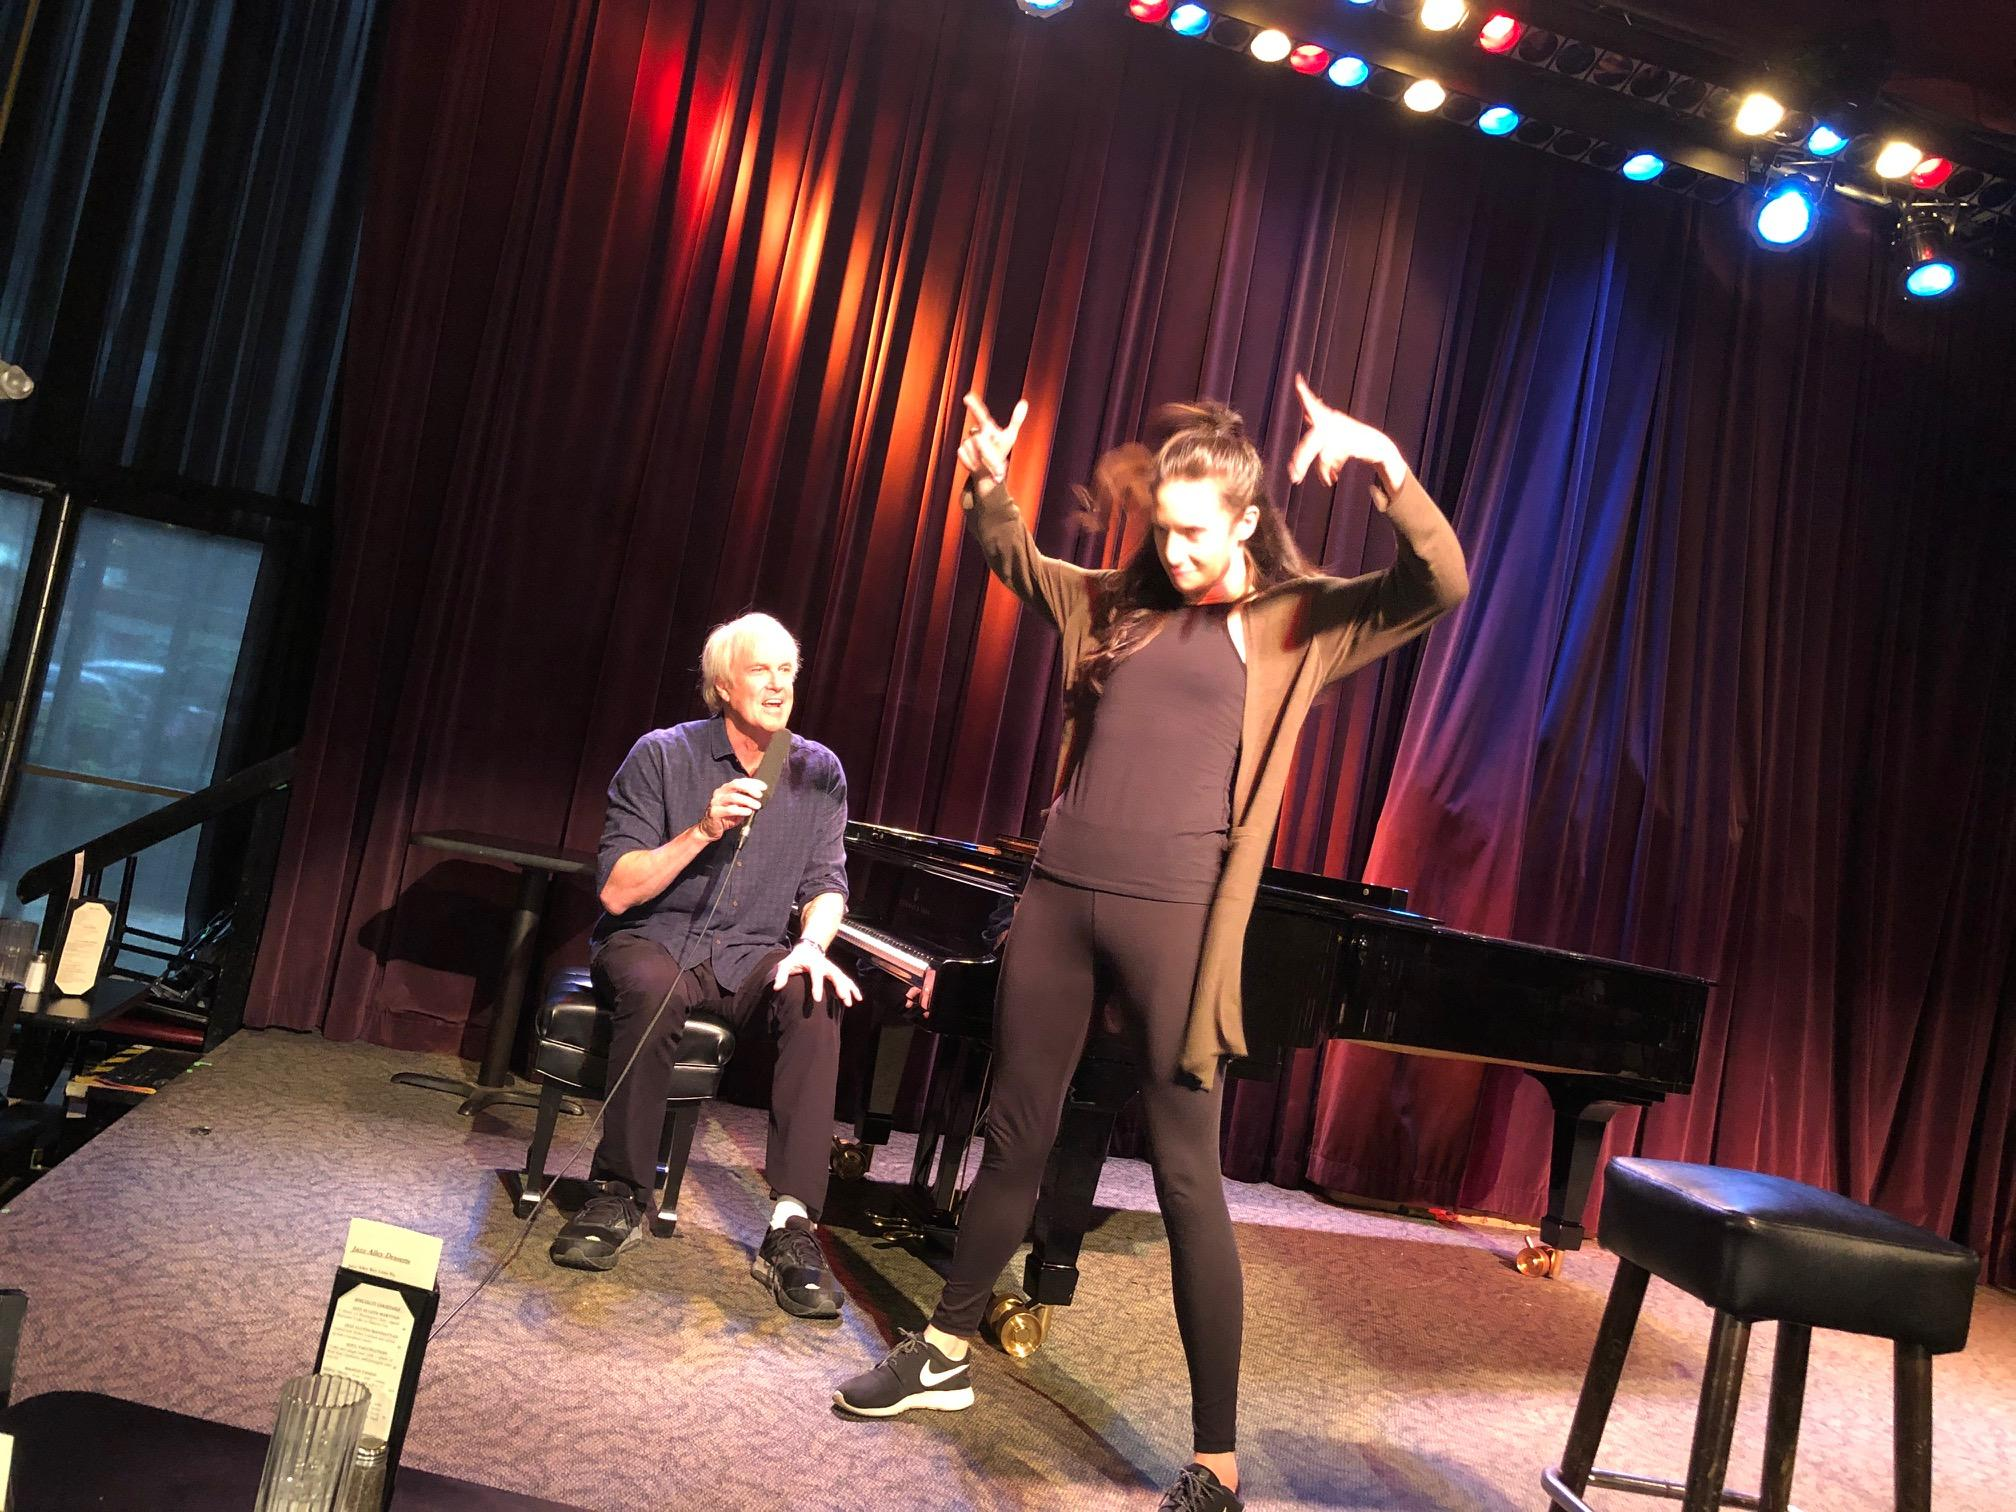 John Tesh performing with his daughter Prima, a professional dancer.{&nbsp;}(Photo: Seattle Refined)<br><p></p>